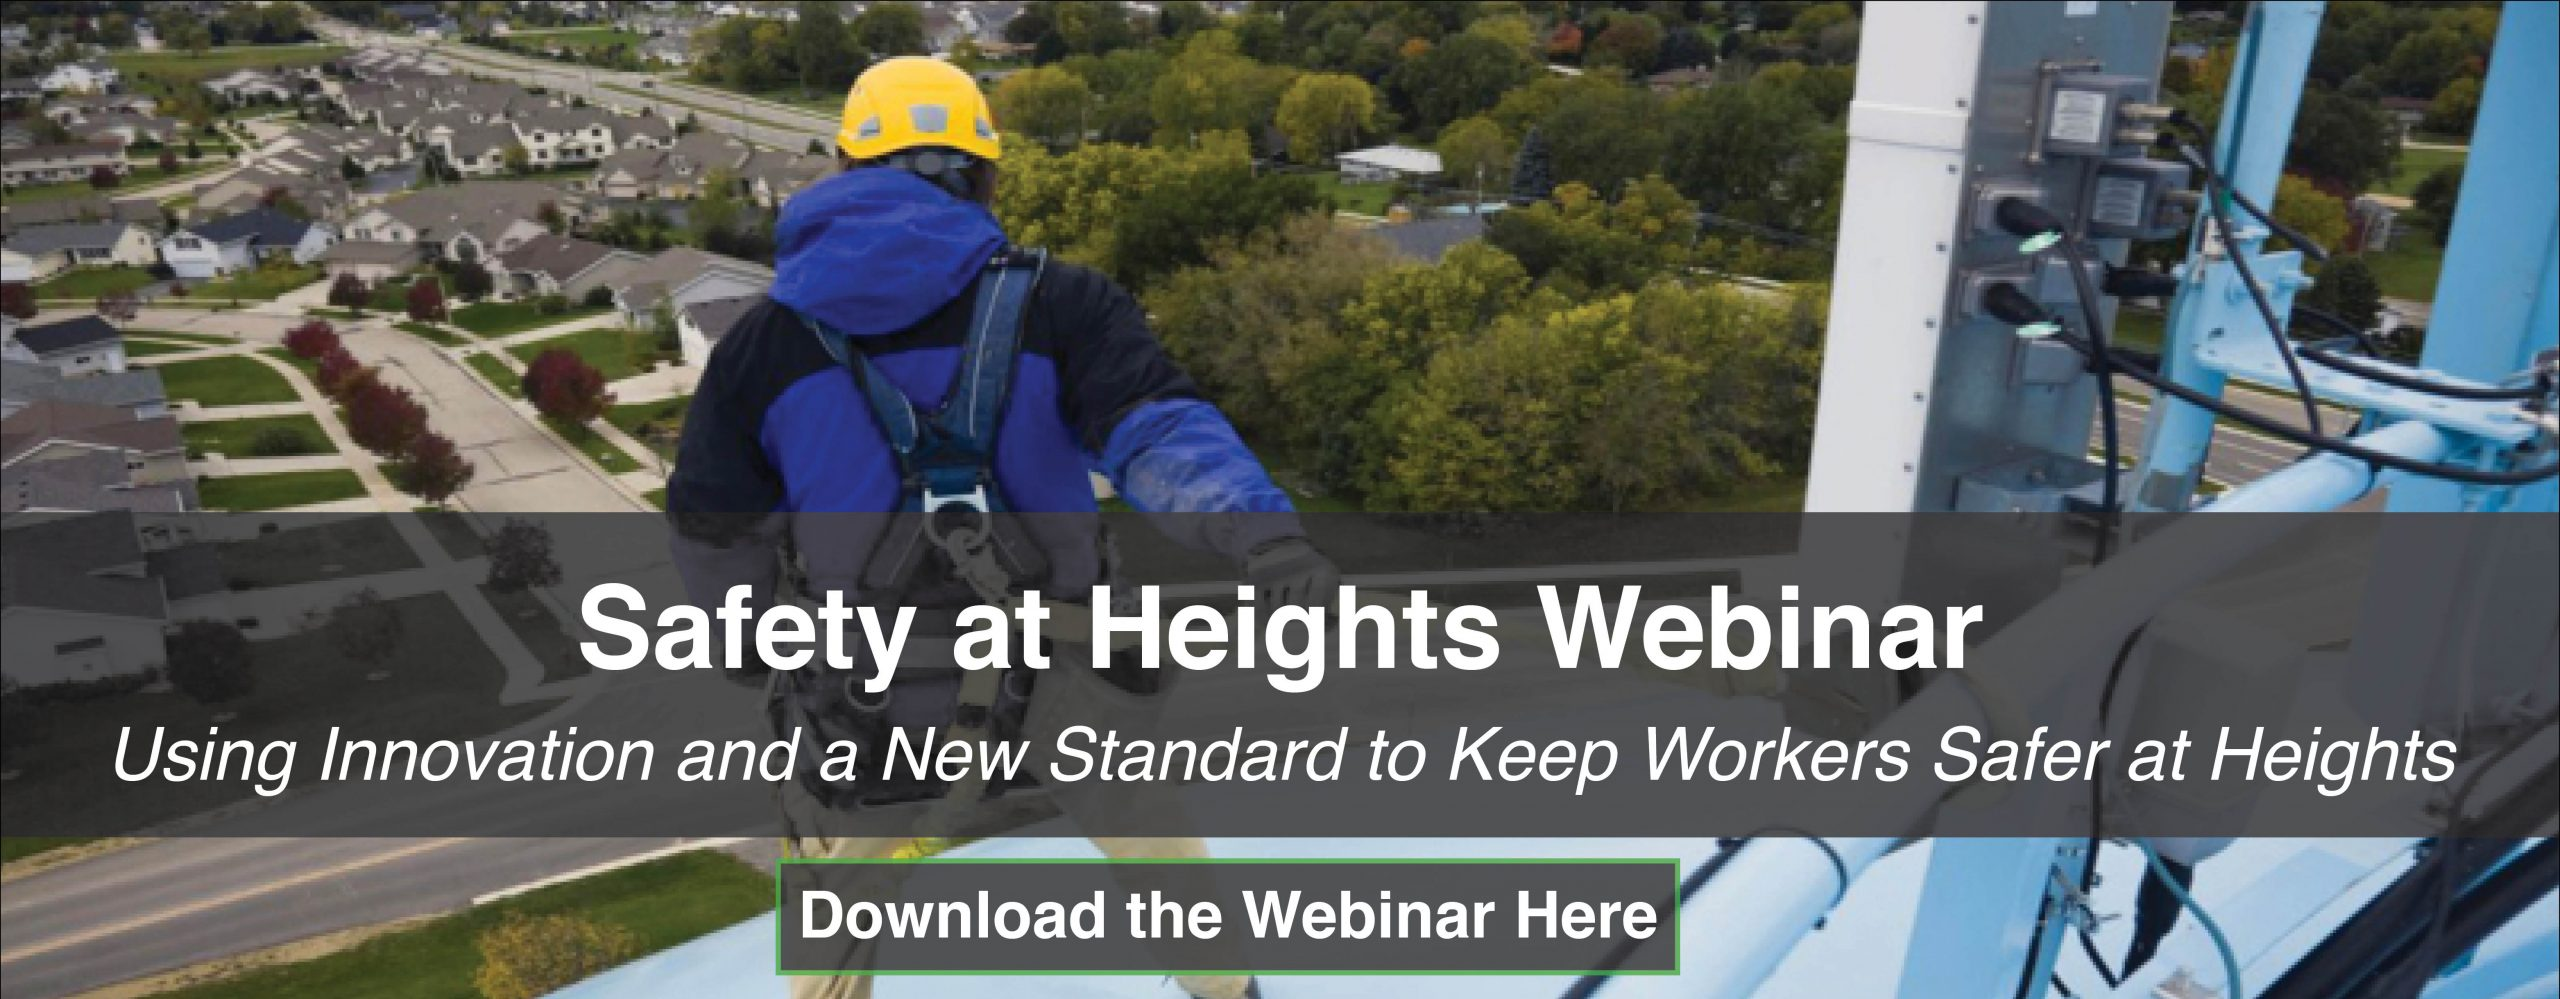 Safety at Heights